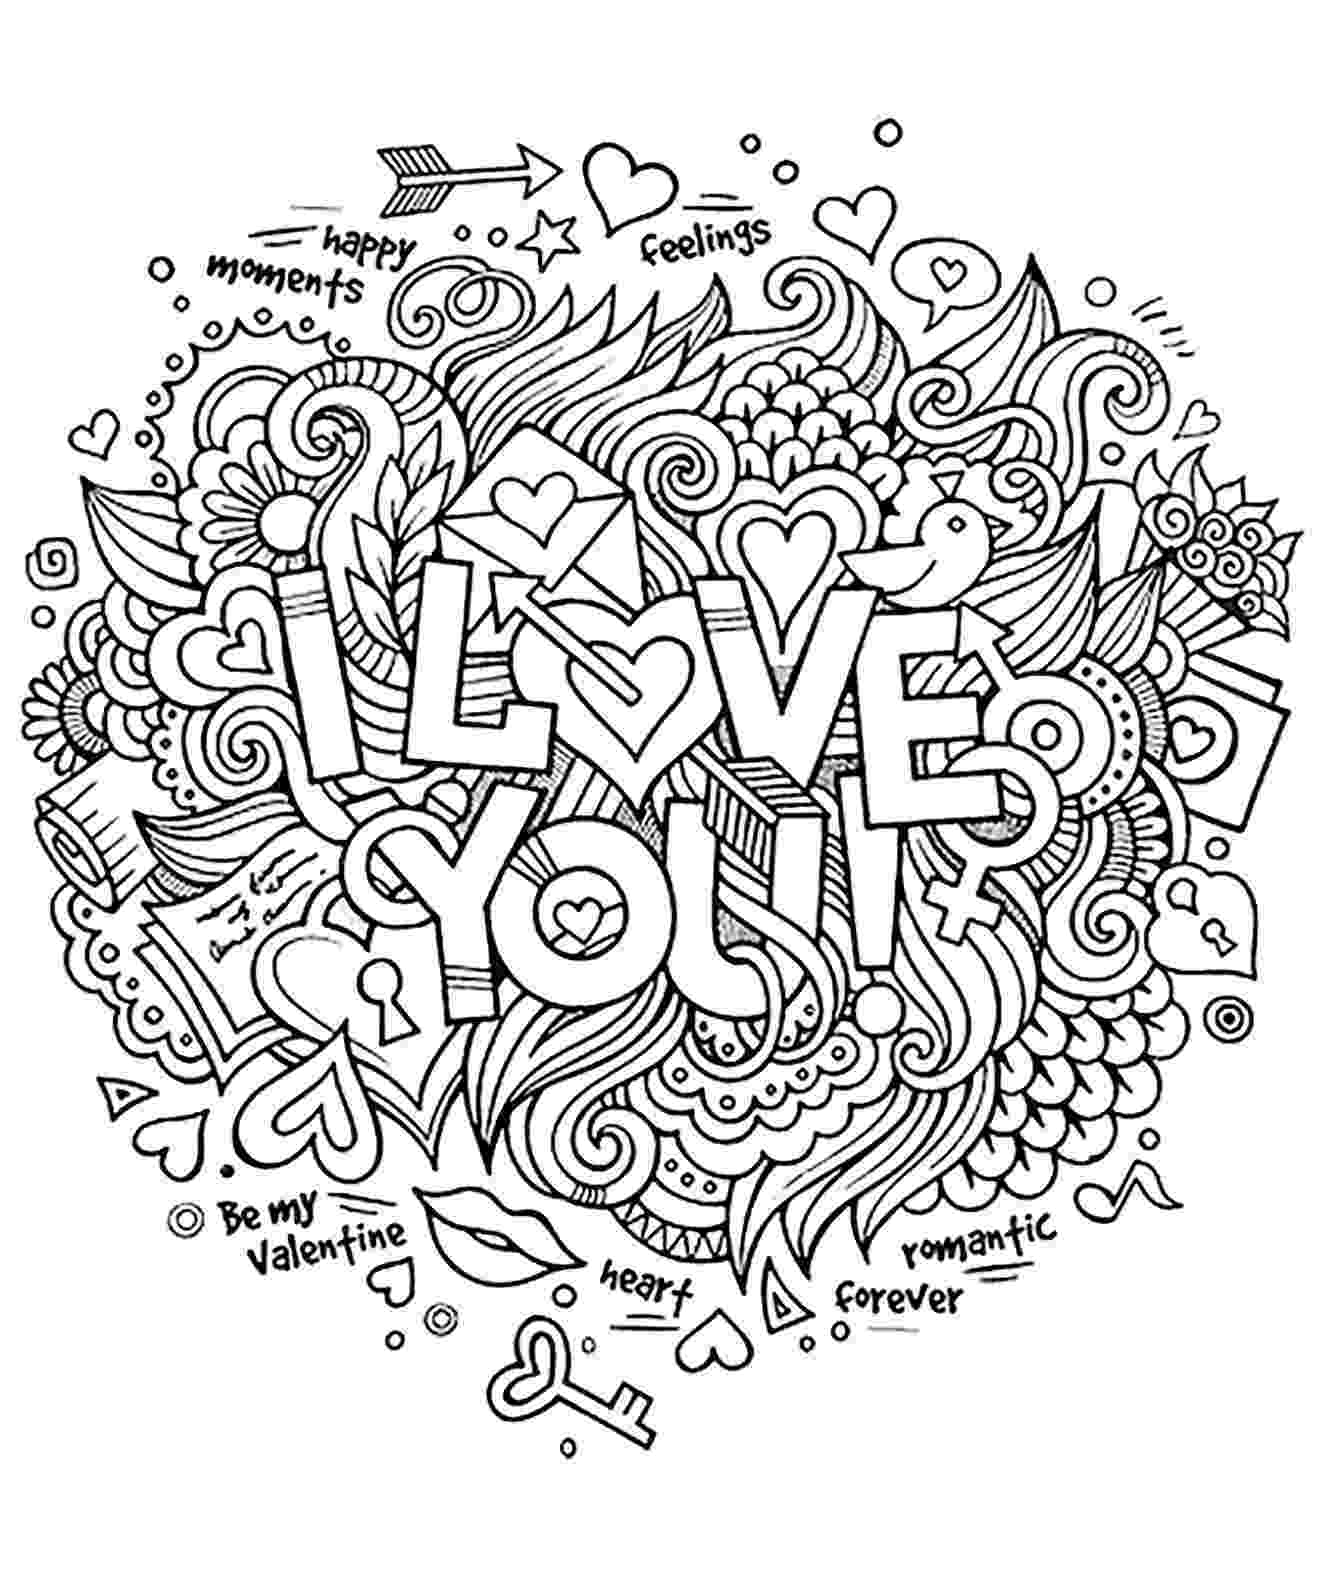 love coloring sheet love coloring page love coloring pages quote coloring sheet love coloring